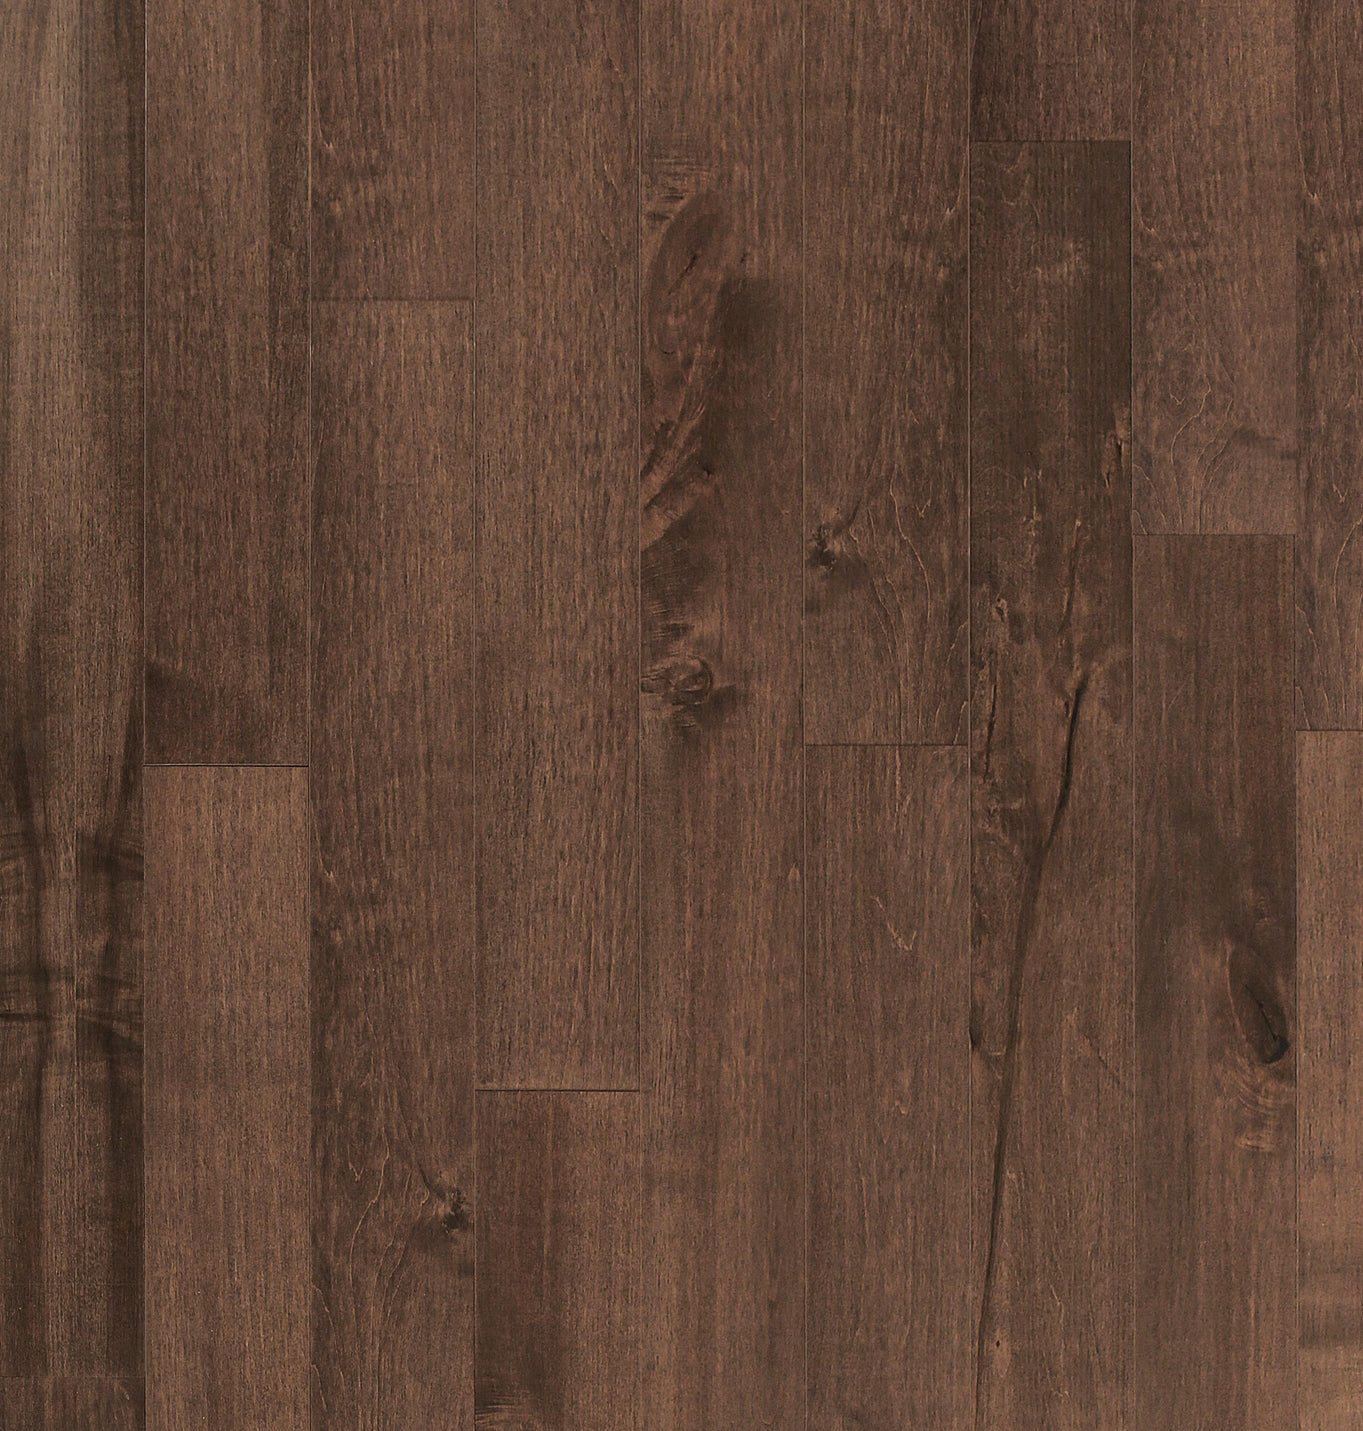 Vineyard Collection: Grey Rock Maple SONOMA 8